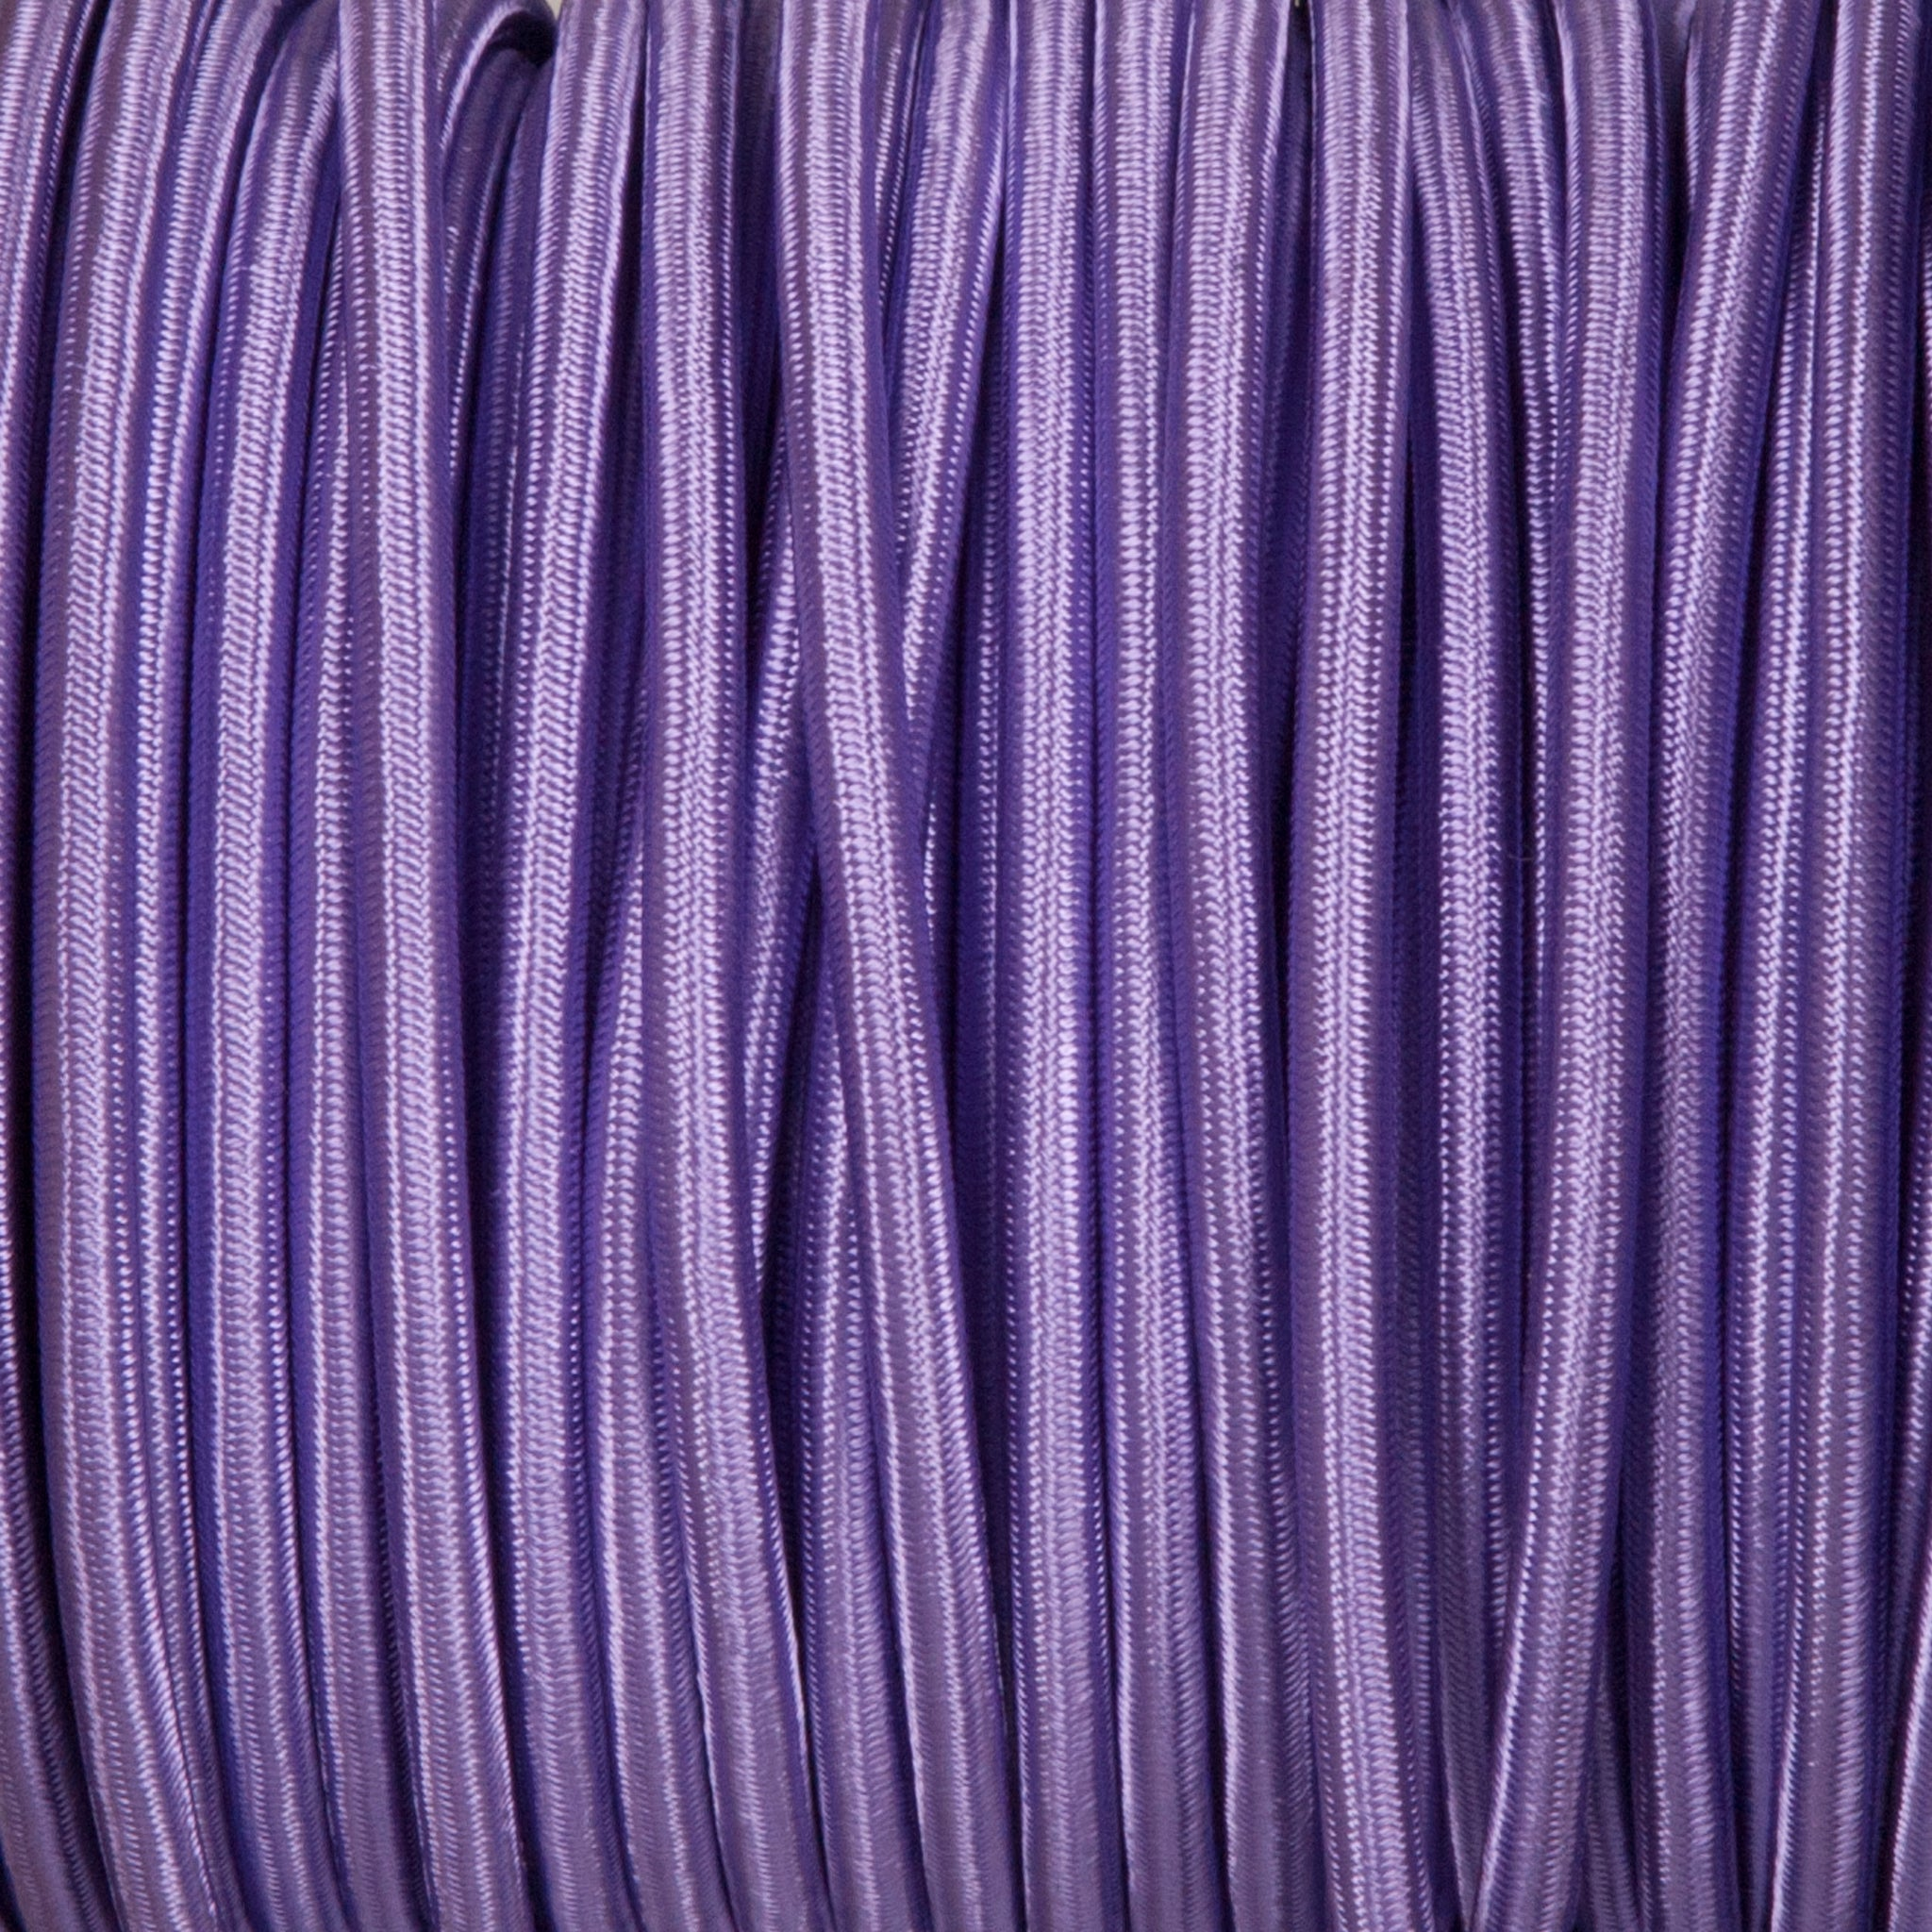 Round lighting cable - Purple braided fabric